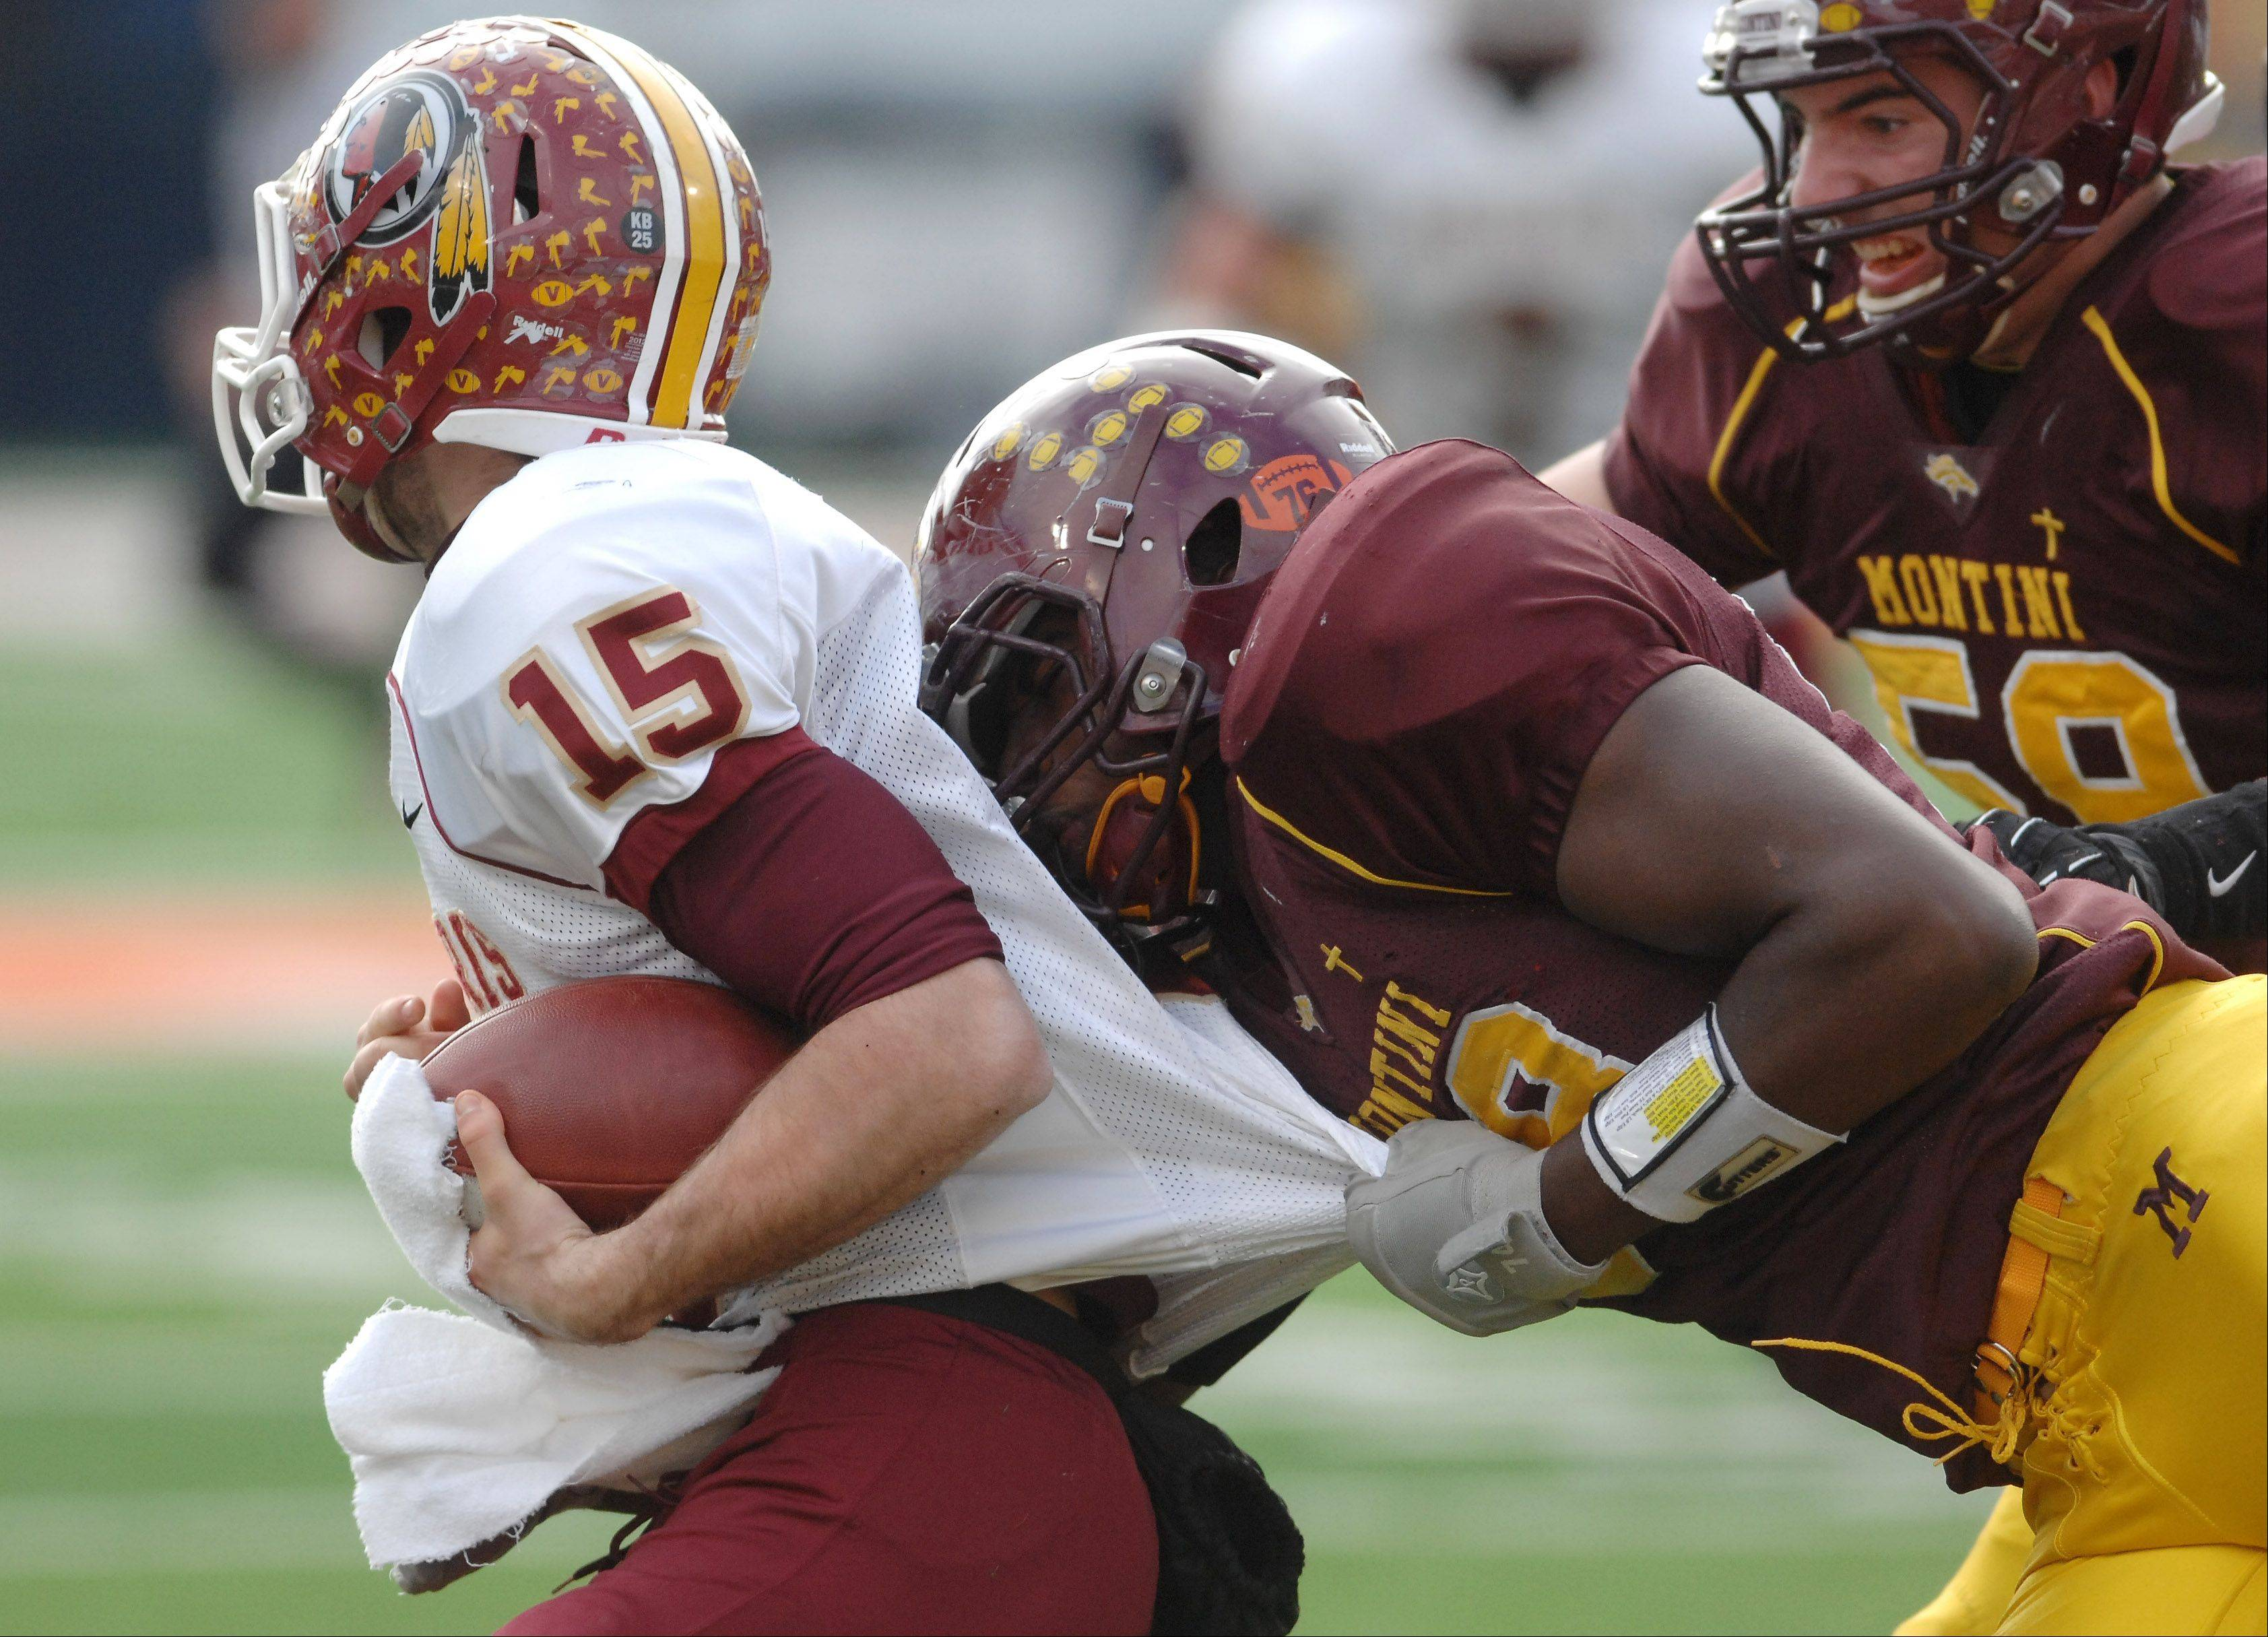 Montini's Fred Beaugard (58) and Dylan Thompson (59), right, combine on a sack of Morris quarterback Zach Cinnamon during Saturday's Class 5A state title game at Memorial Stadium in Champaign.